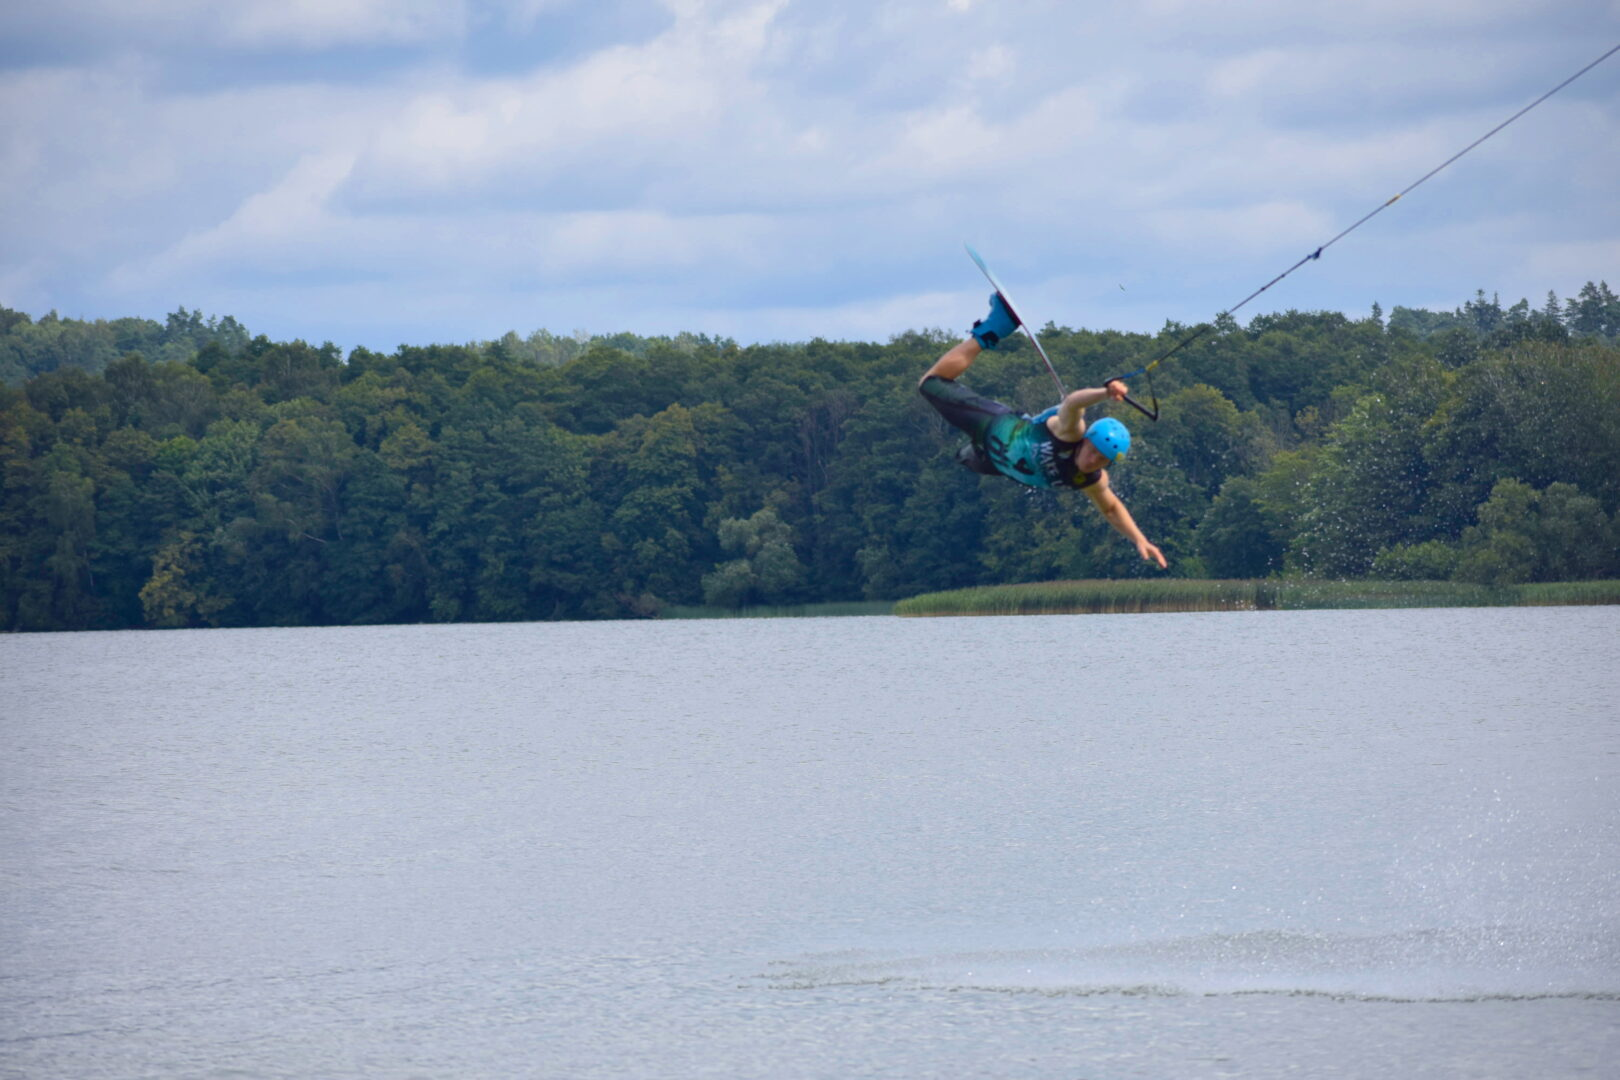 WAKEBOARDING & RELAX